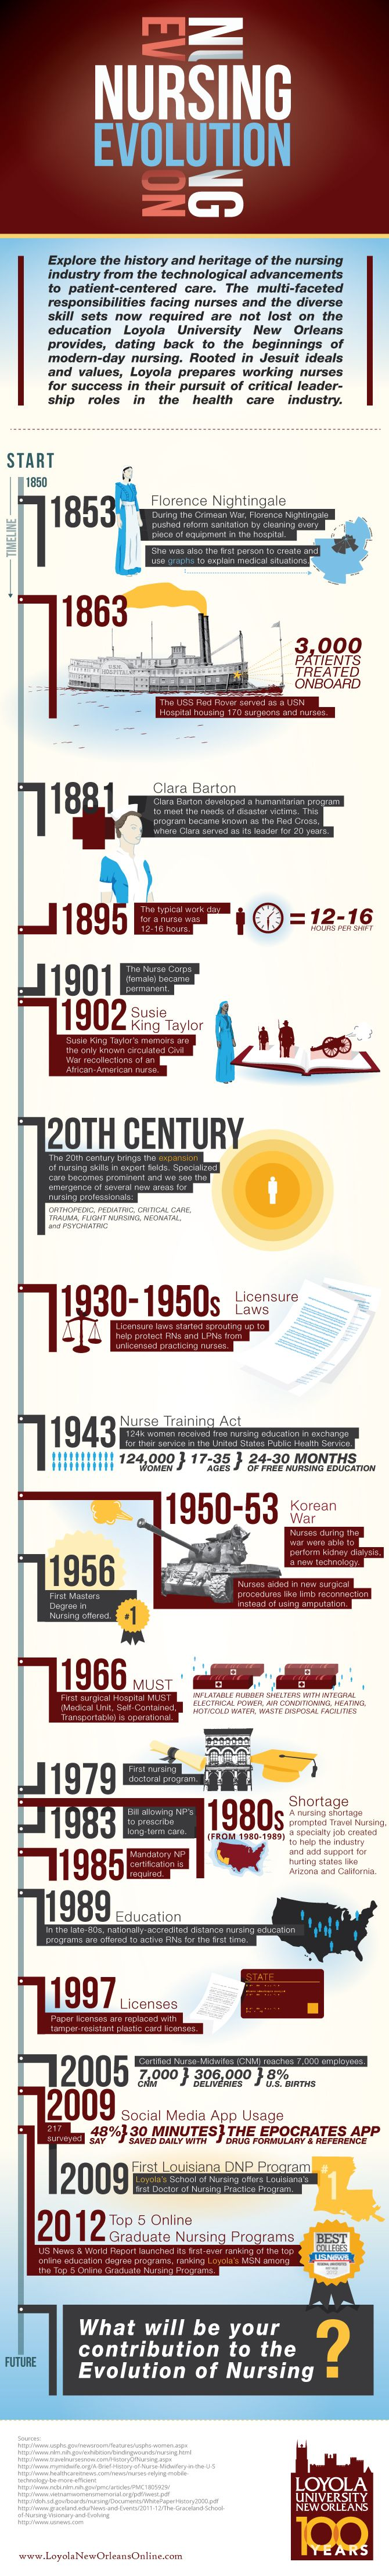 History of Nursing | Loyola University New Orleans Online. Loyola's School of Nursing has always remained at the forefront of nursing education, and is constantly striving to stay current with the latest medical innovations and techniques. But where did we begin? Discover the illustrious history of Loyola's School of Nursing